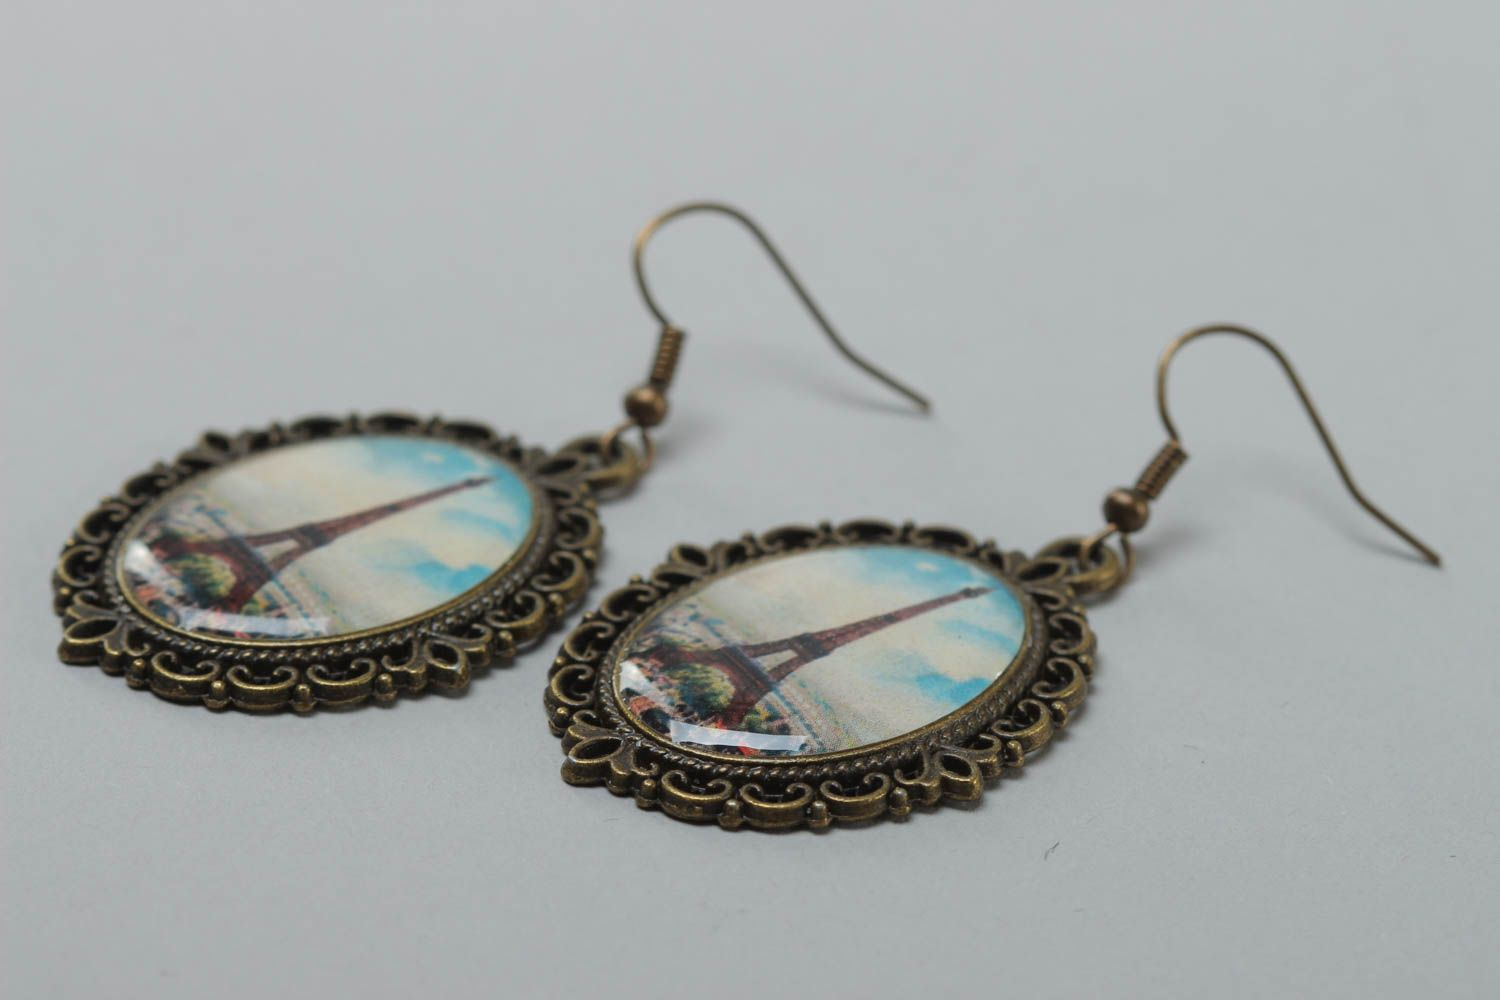 Handmade women's earrings with glass glaze oval vintage stylish accessory photo 3